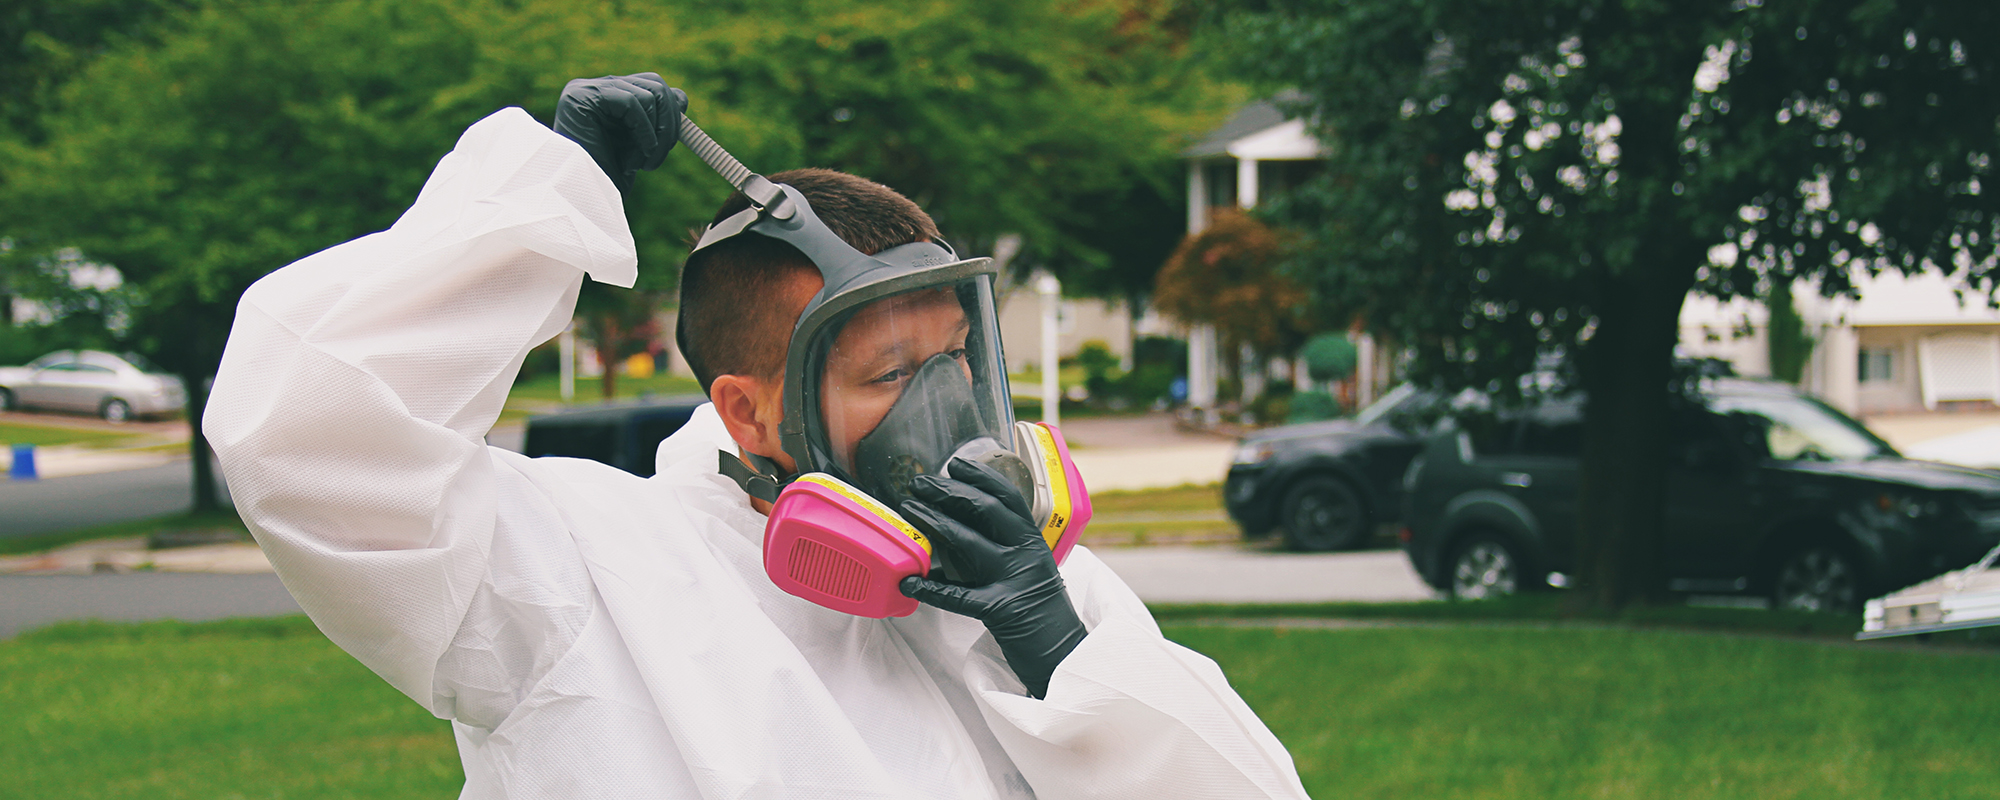 mold-remediation-company-eastern-pa